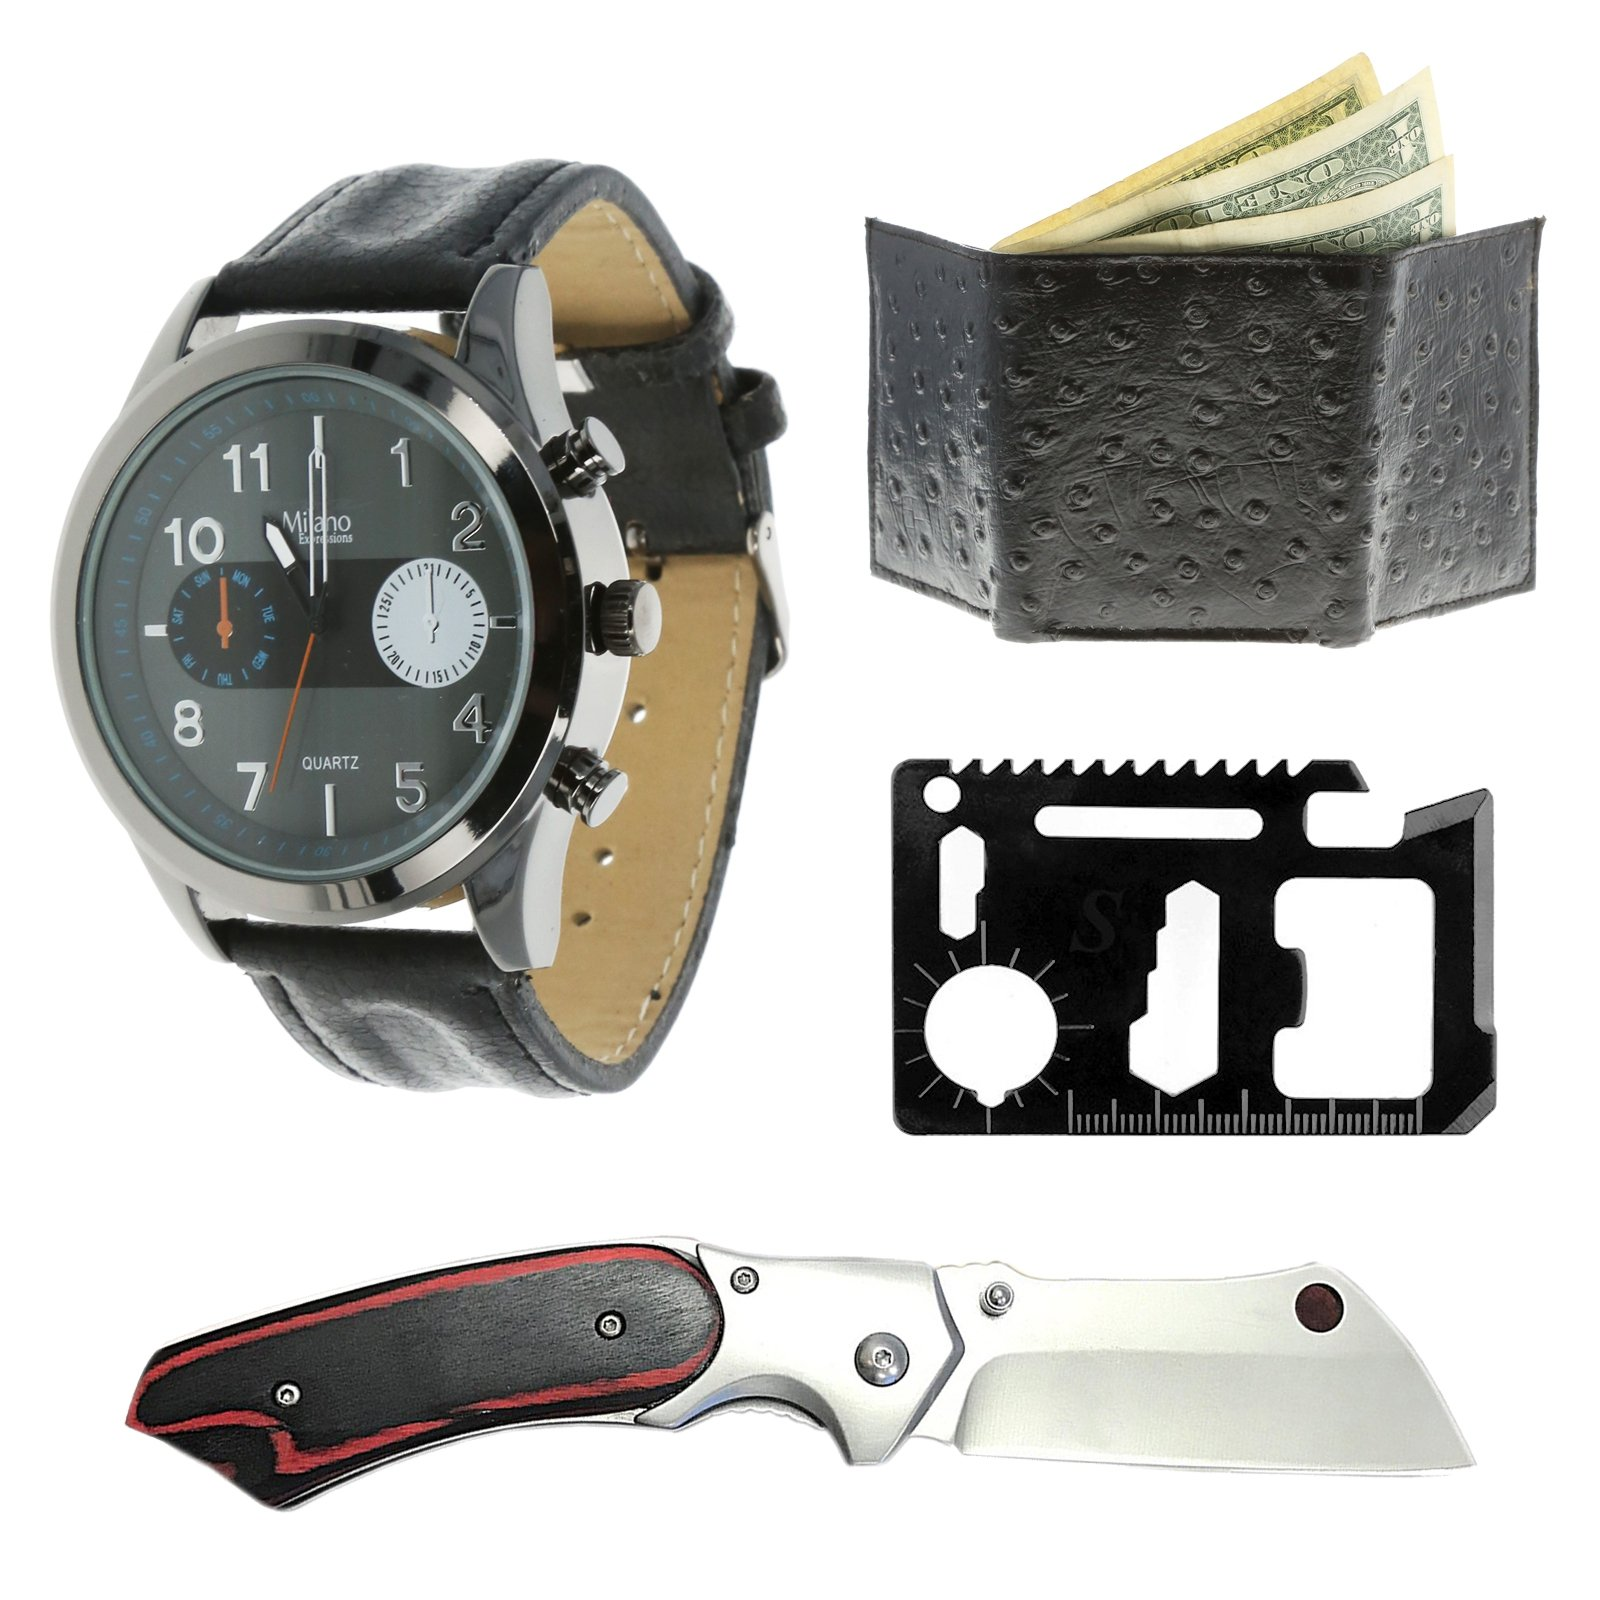 Specter 4pc Gentleman Knife Gift Set With Watch Wallet and Multi Tool - Obsidian